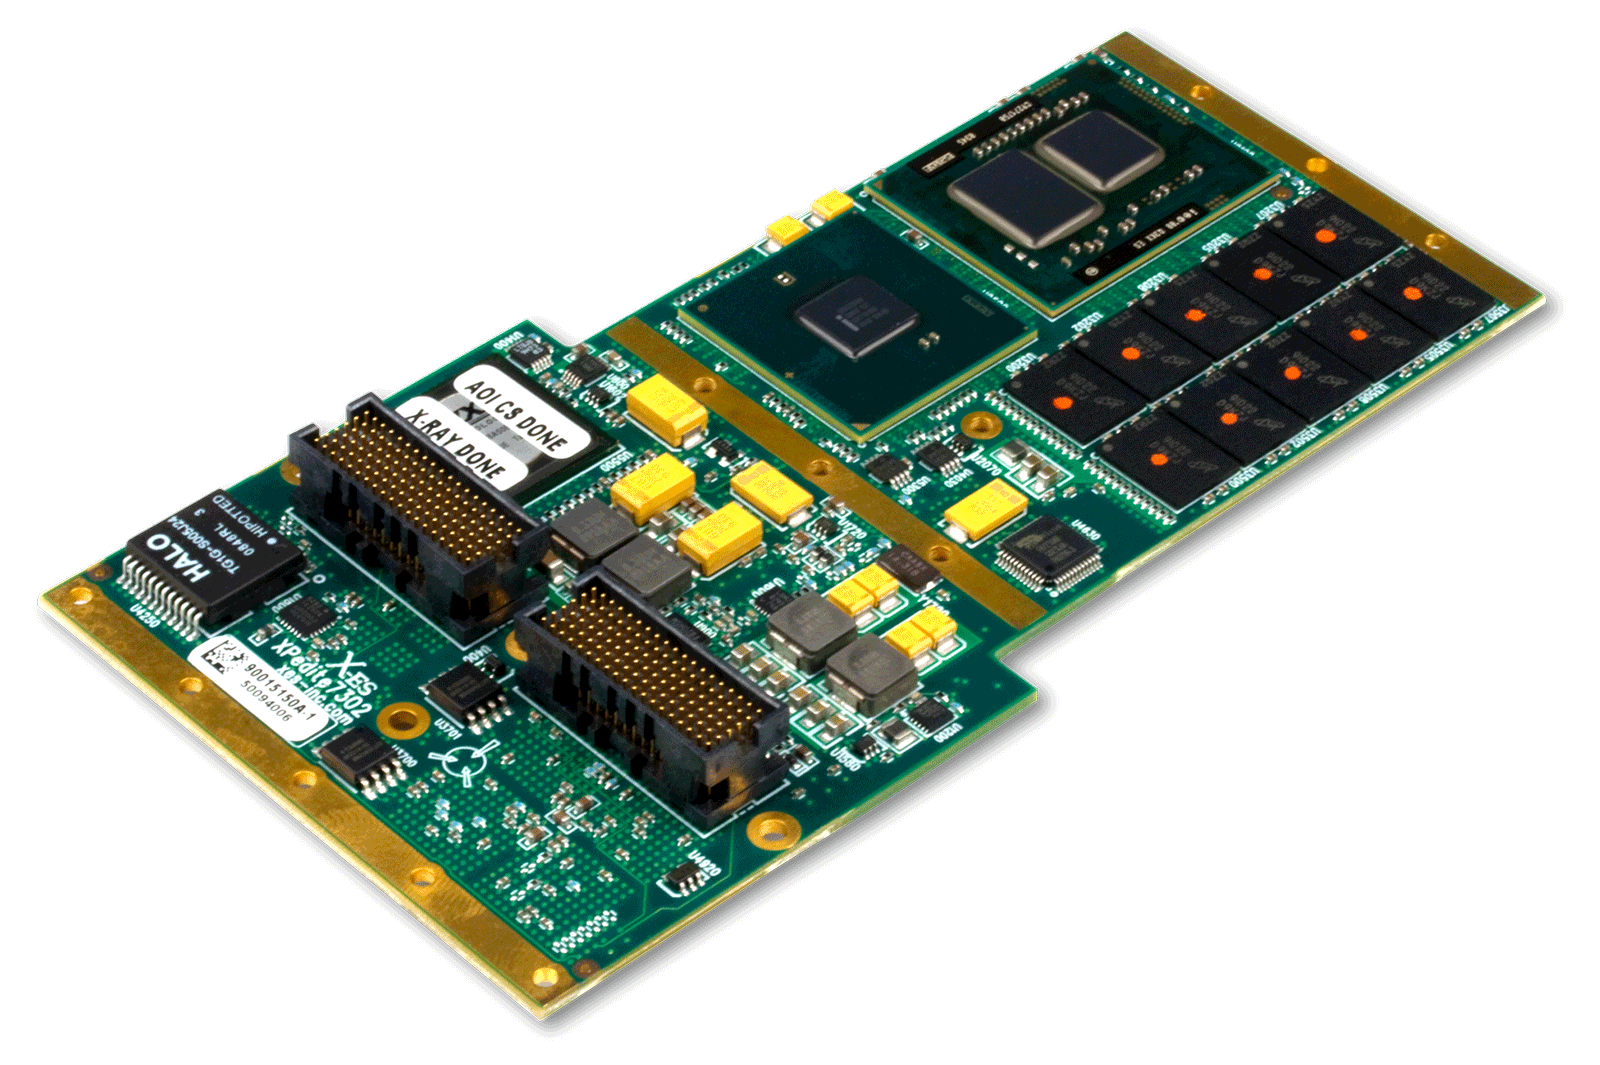 XPedite7302 | Intel Core i7 XMC with SecureCOTS Capabilities